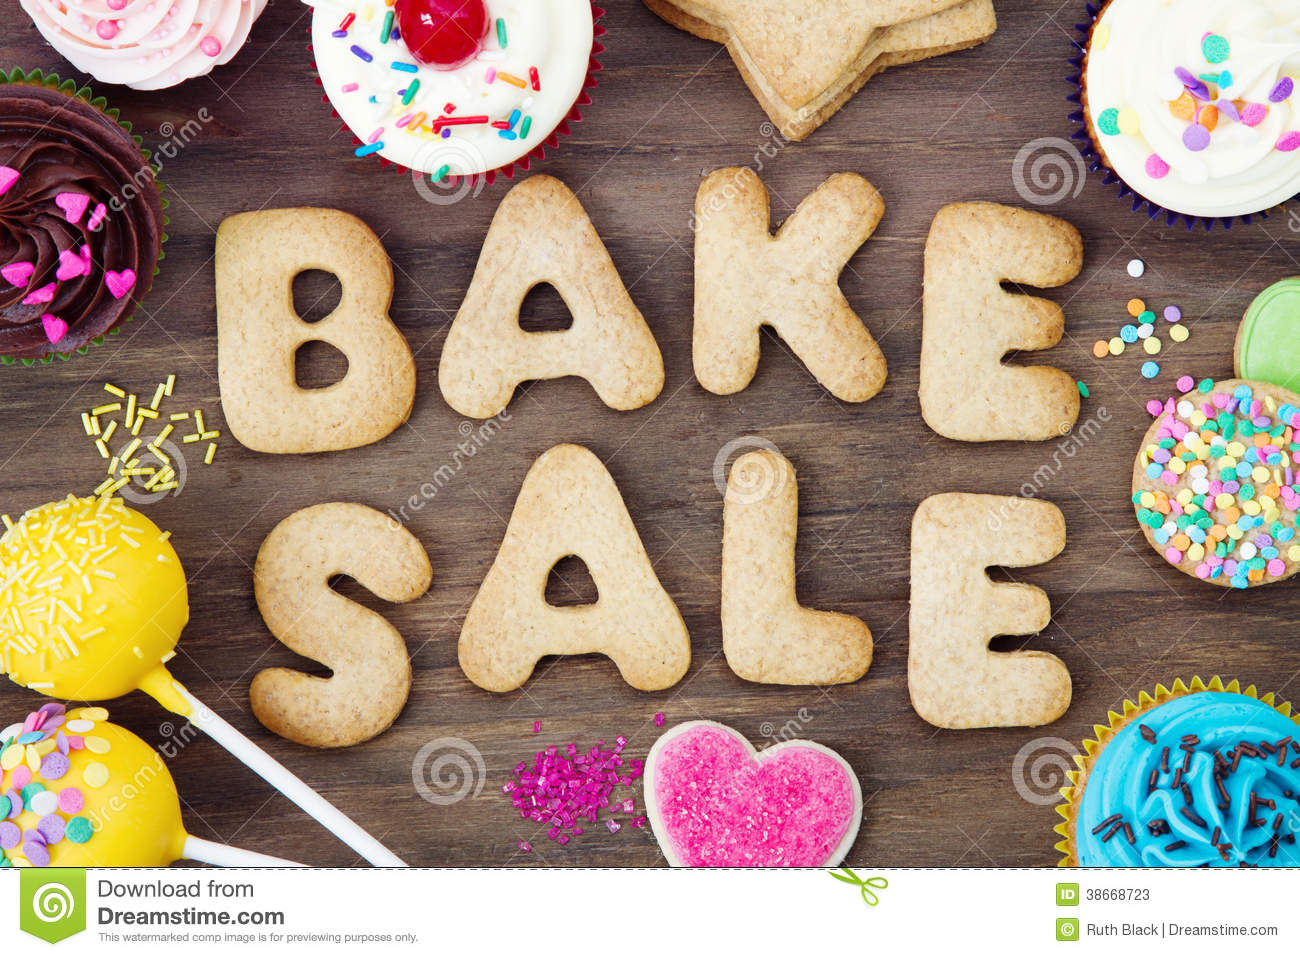 fun cookie bake flyer template stock vector image 48140597 bake cookies stock photos